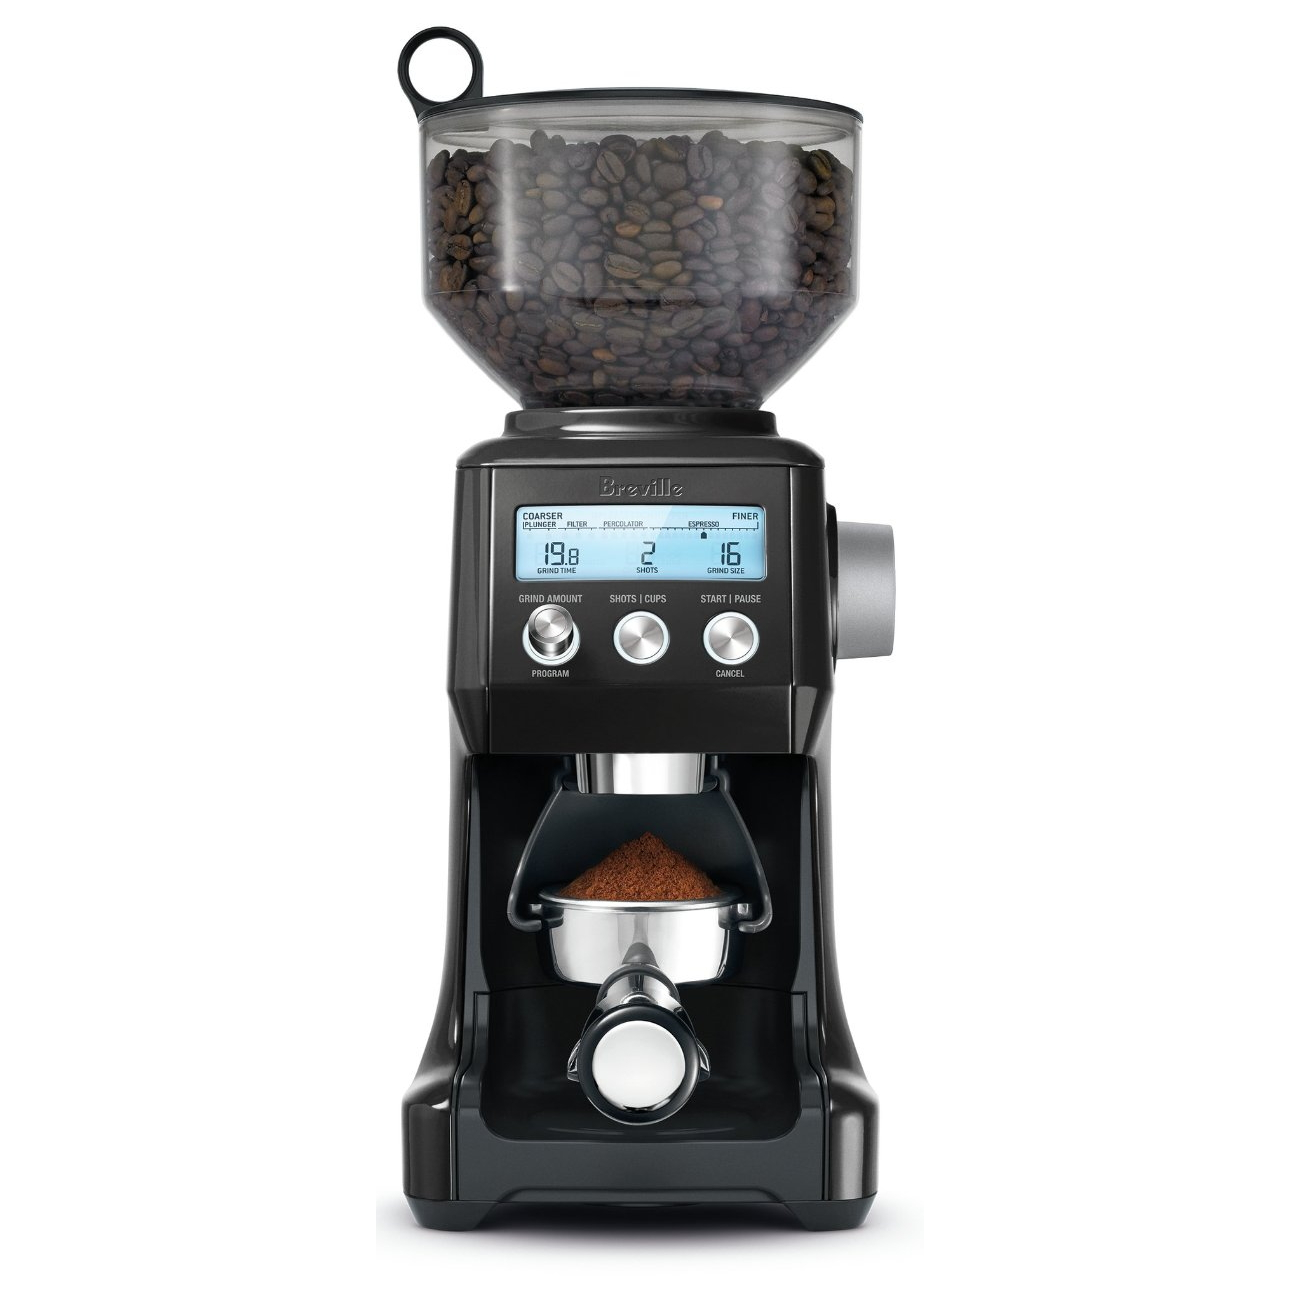 Breville Smart Grinder Pro Black Sesame Die-Cast Metal Conical Burr Coffee Grinder